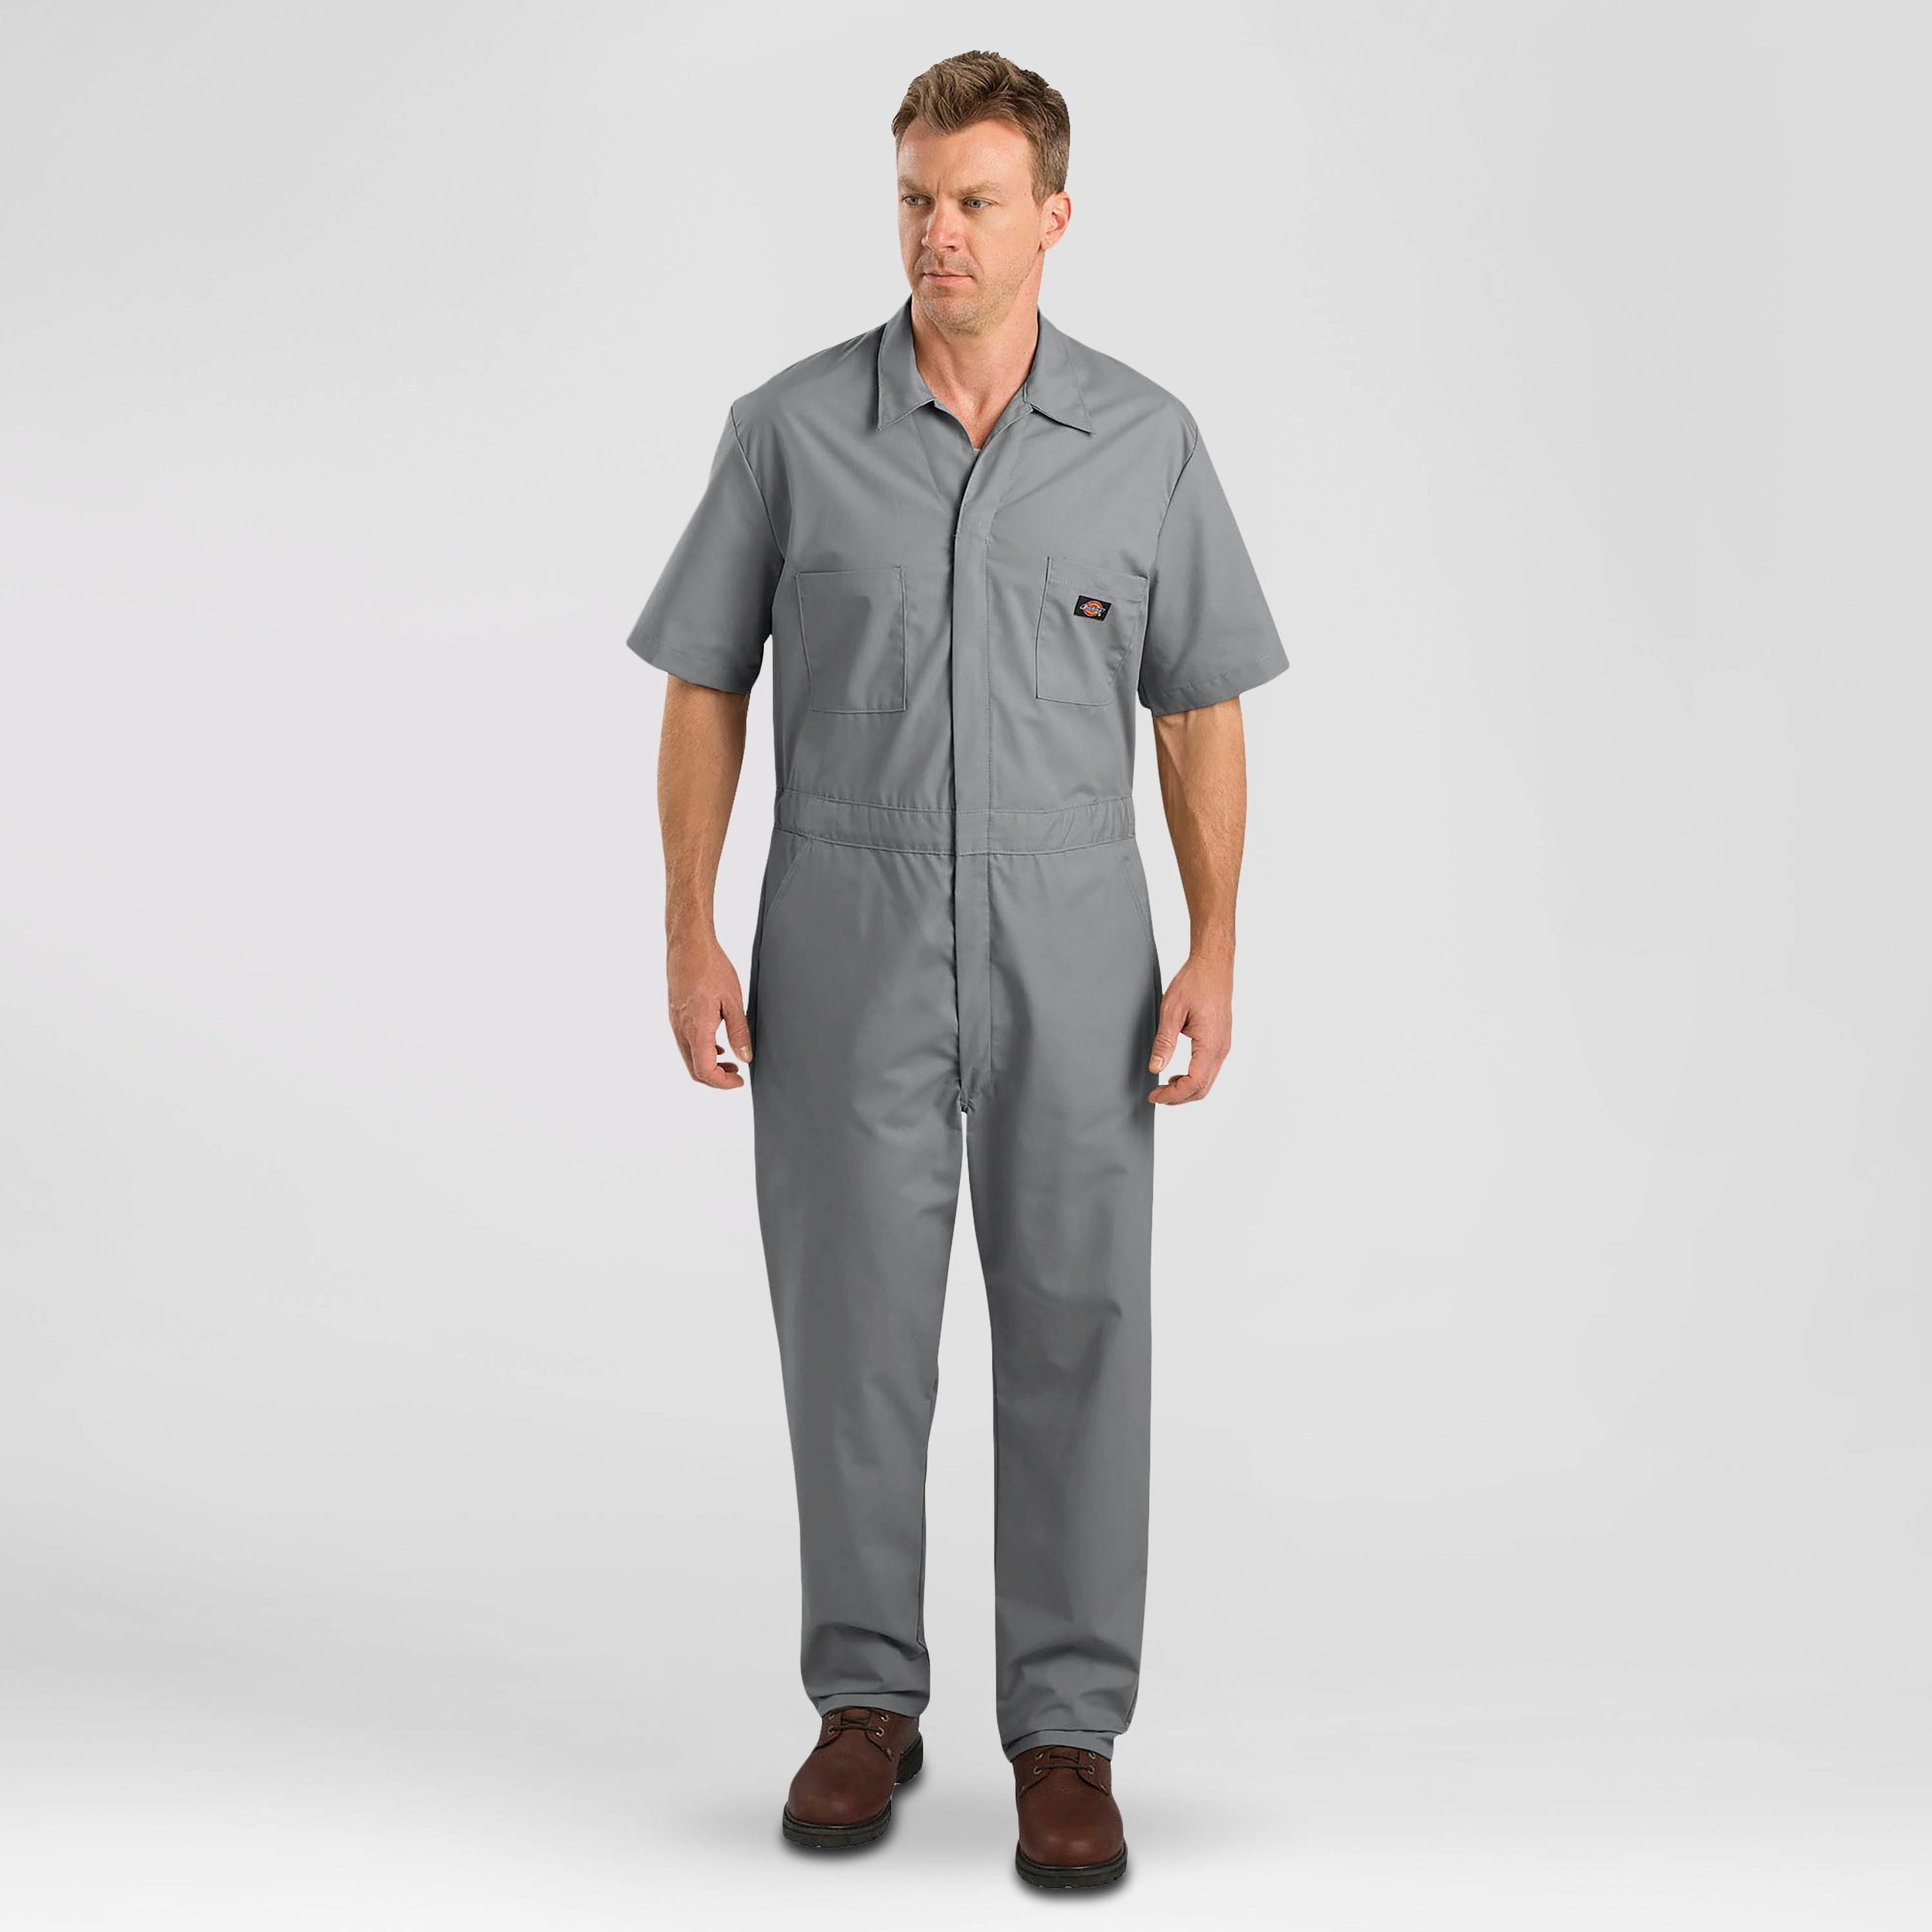 Dickies® Men's Short Sleeve Coverall, $31.99